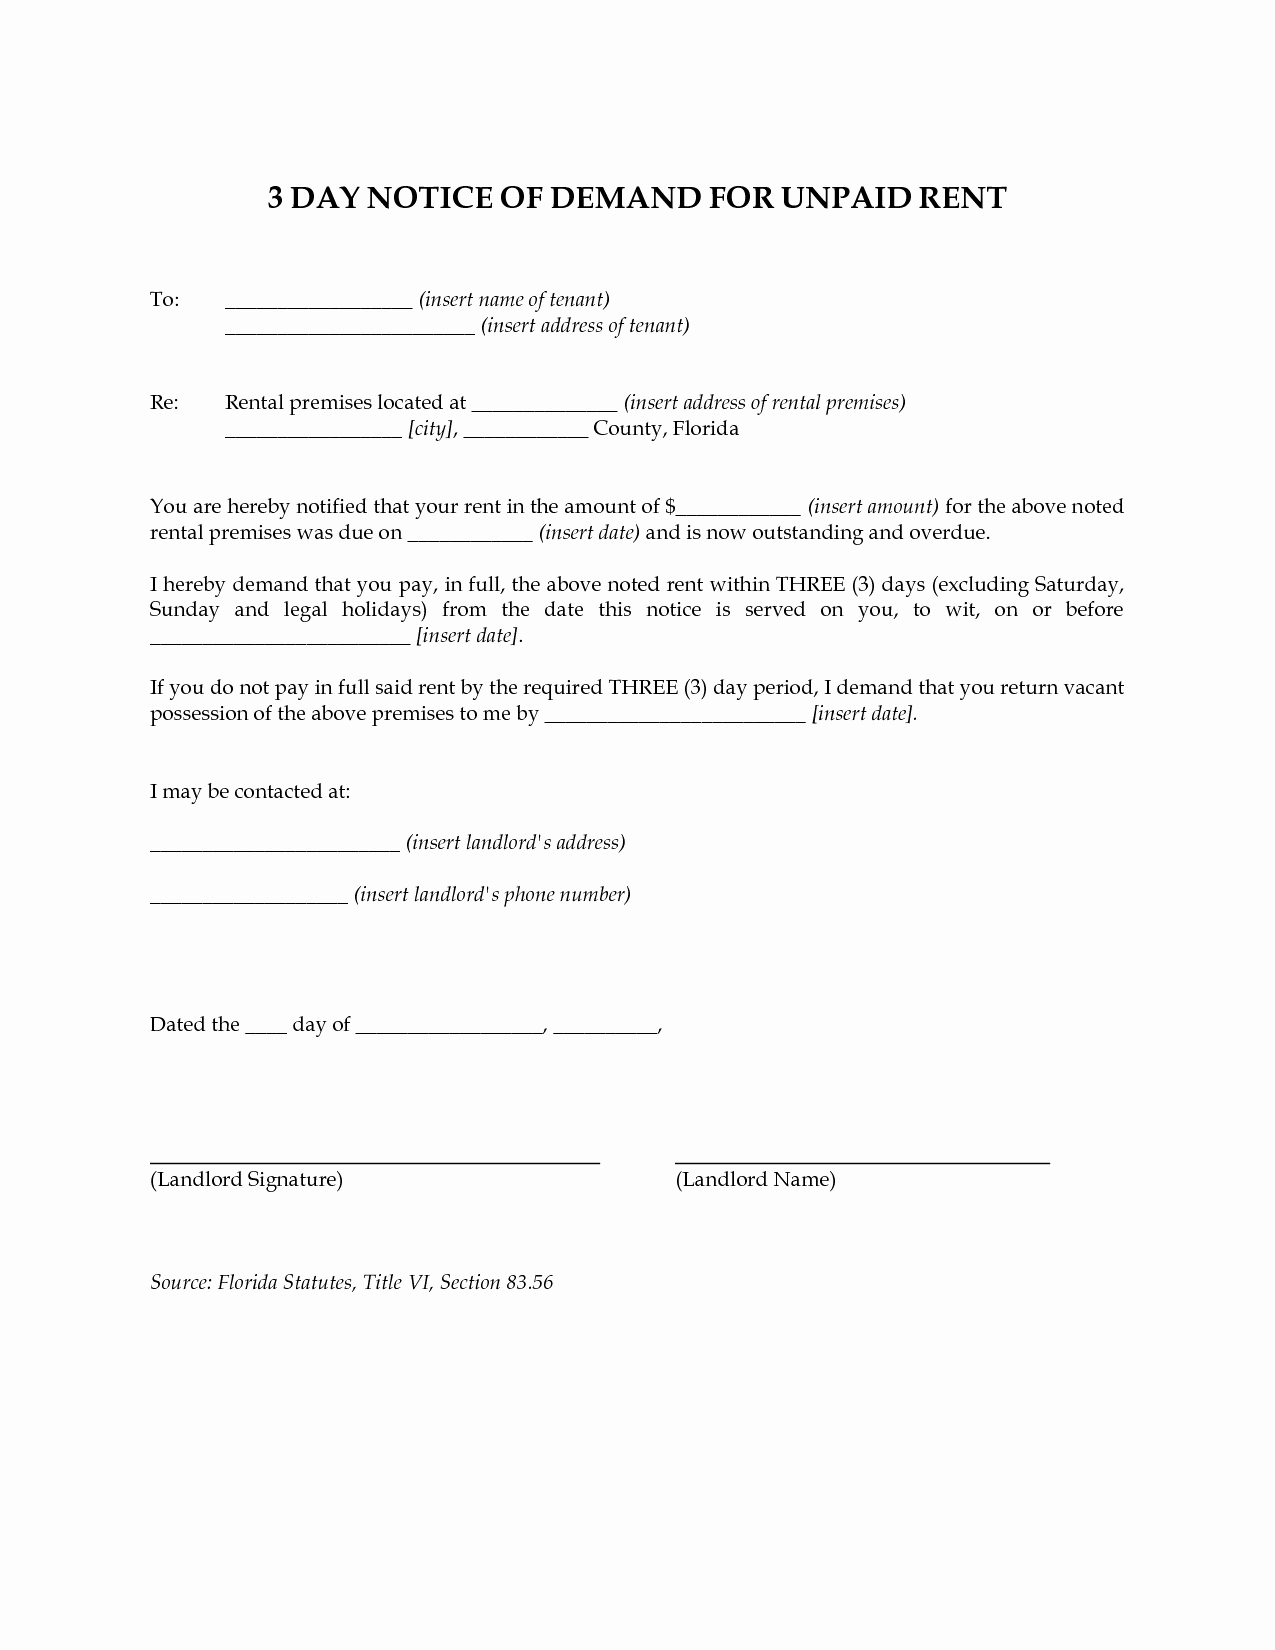 Demand Letter Template Breach Of Contract - Sample Demand Letter for Unpaid Rent Beautiful Sample Demand Letter